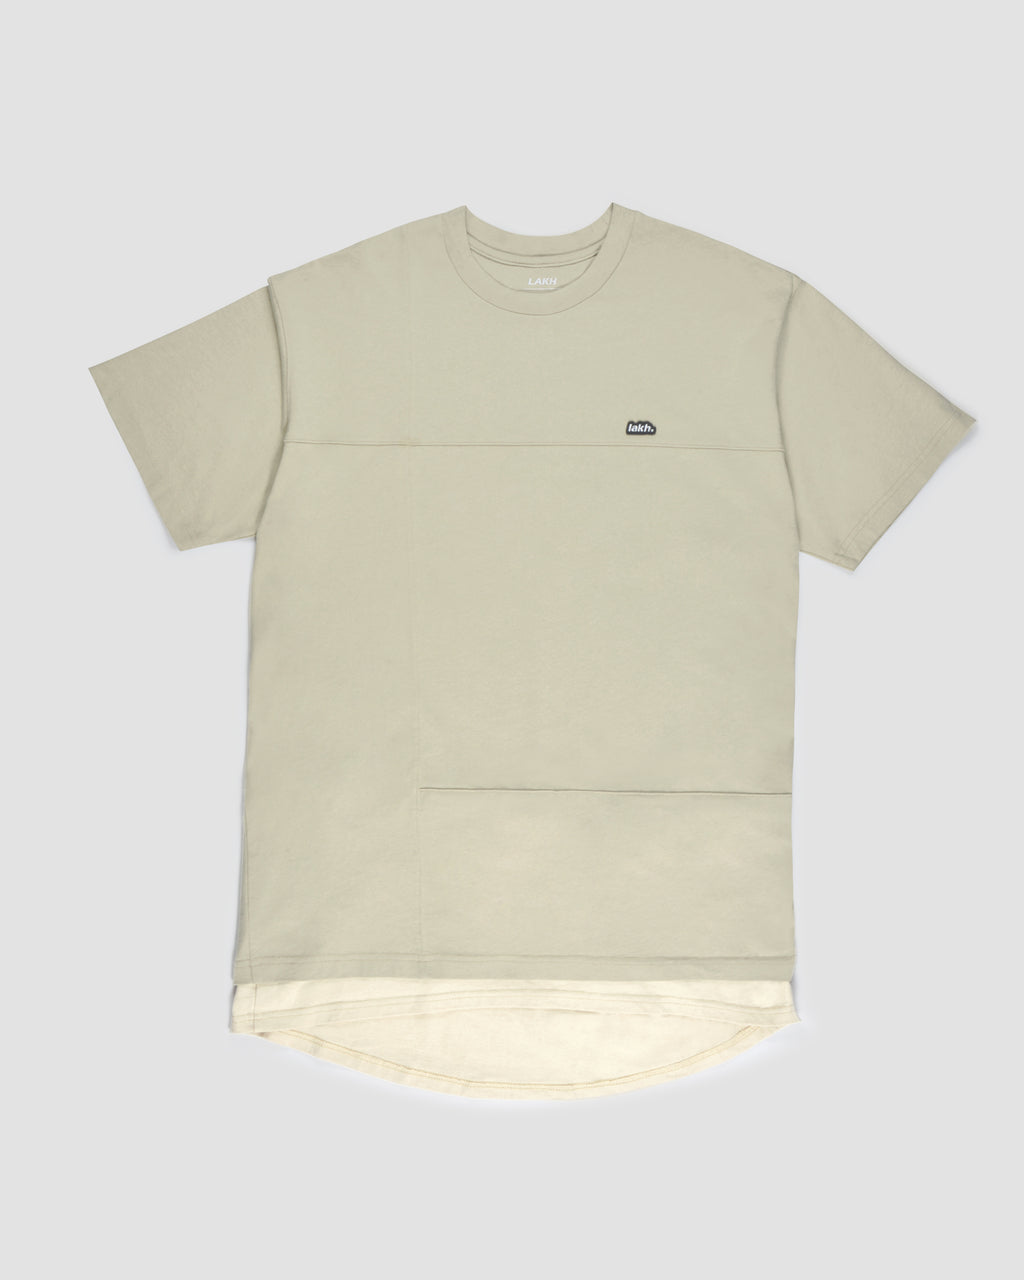 Layers Patch Tee - Rock